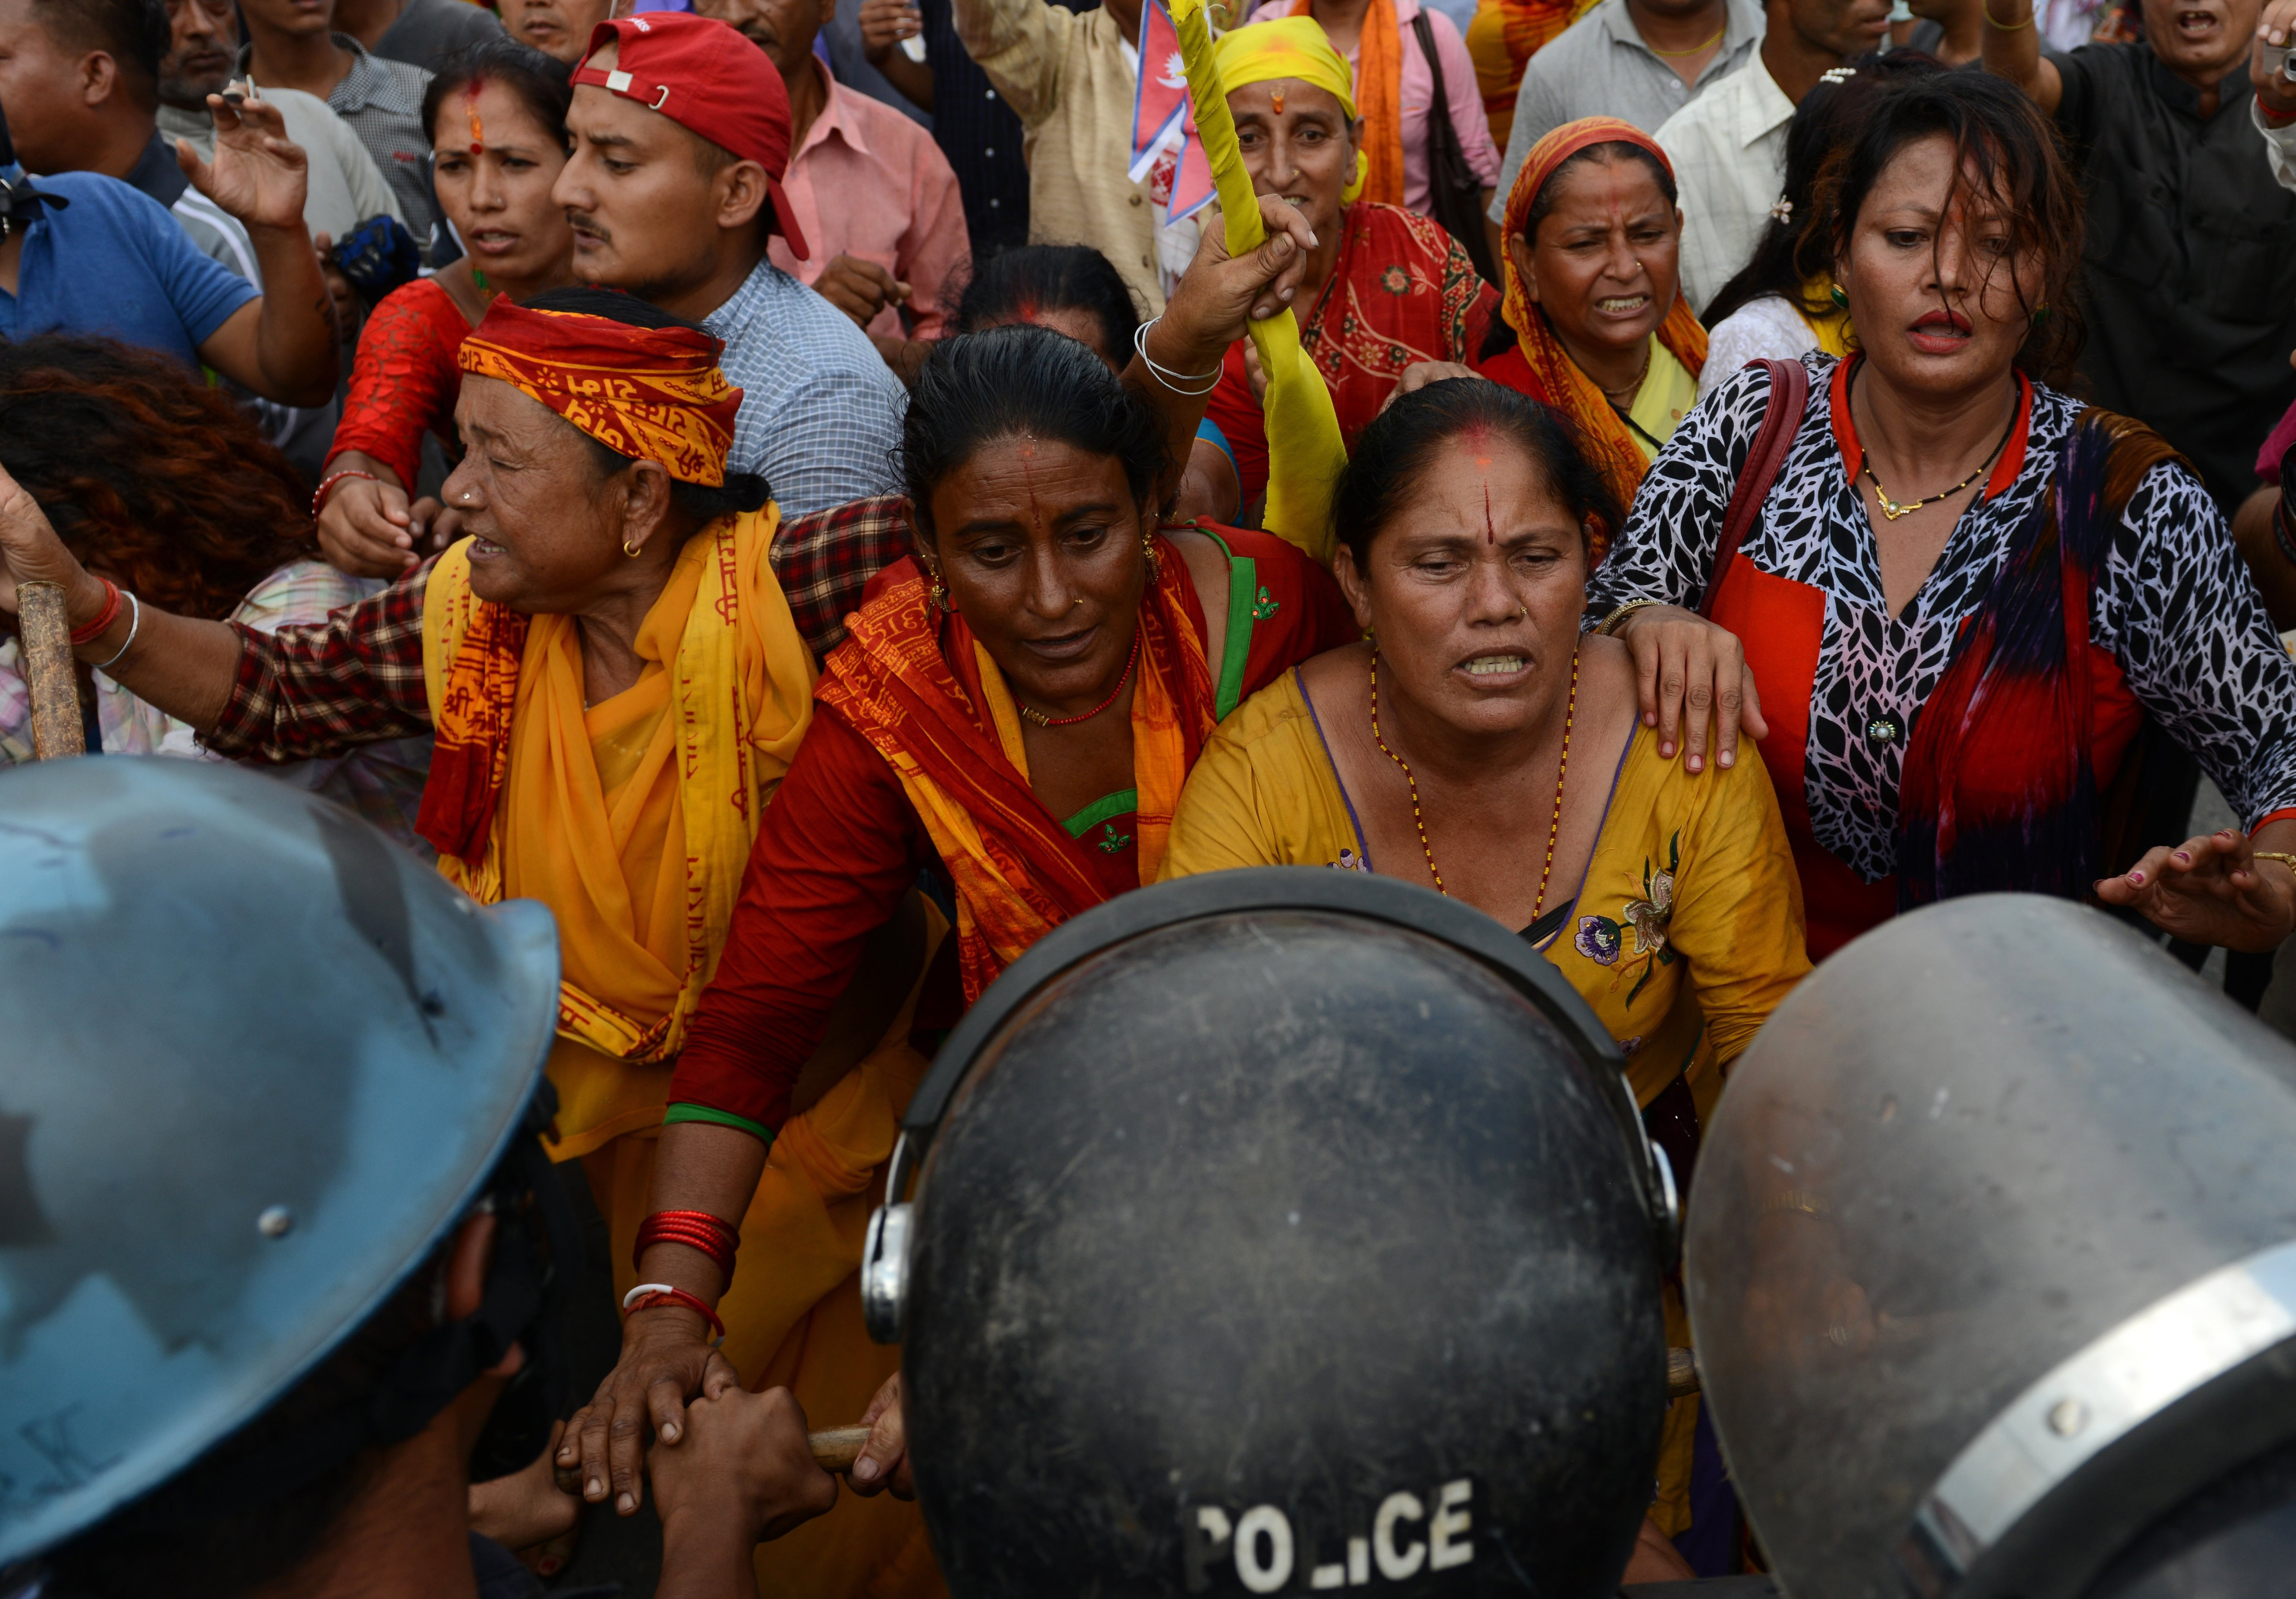 Nepalese police stop Hindu activists as they try to break through to a cordoned-off area near parliament during a protest demanding Nepal be declared a Hindu state in Kathmandu on Sept. 1, 2015